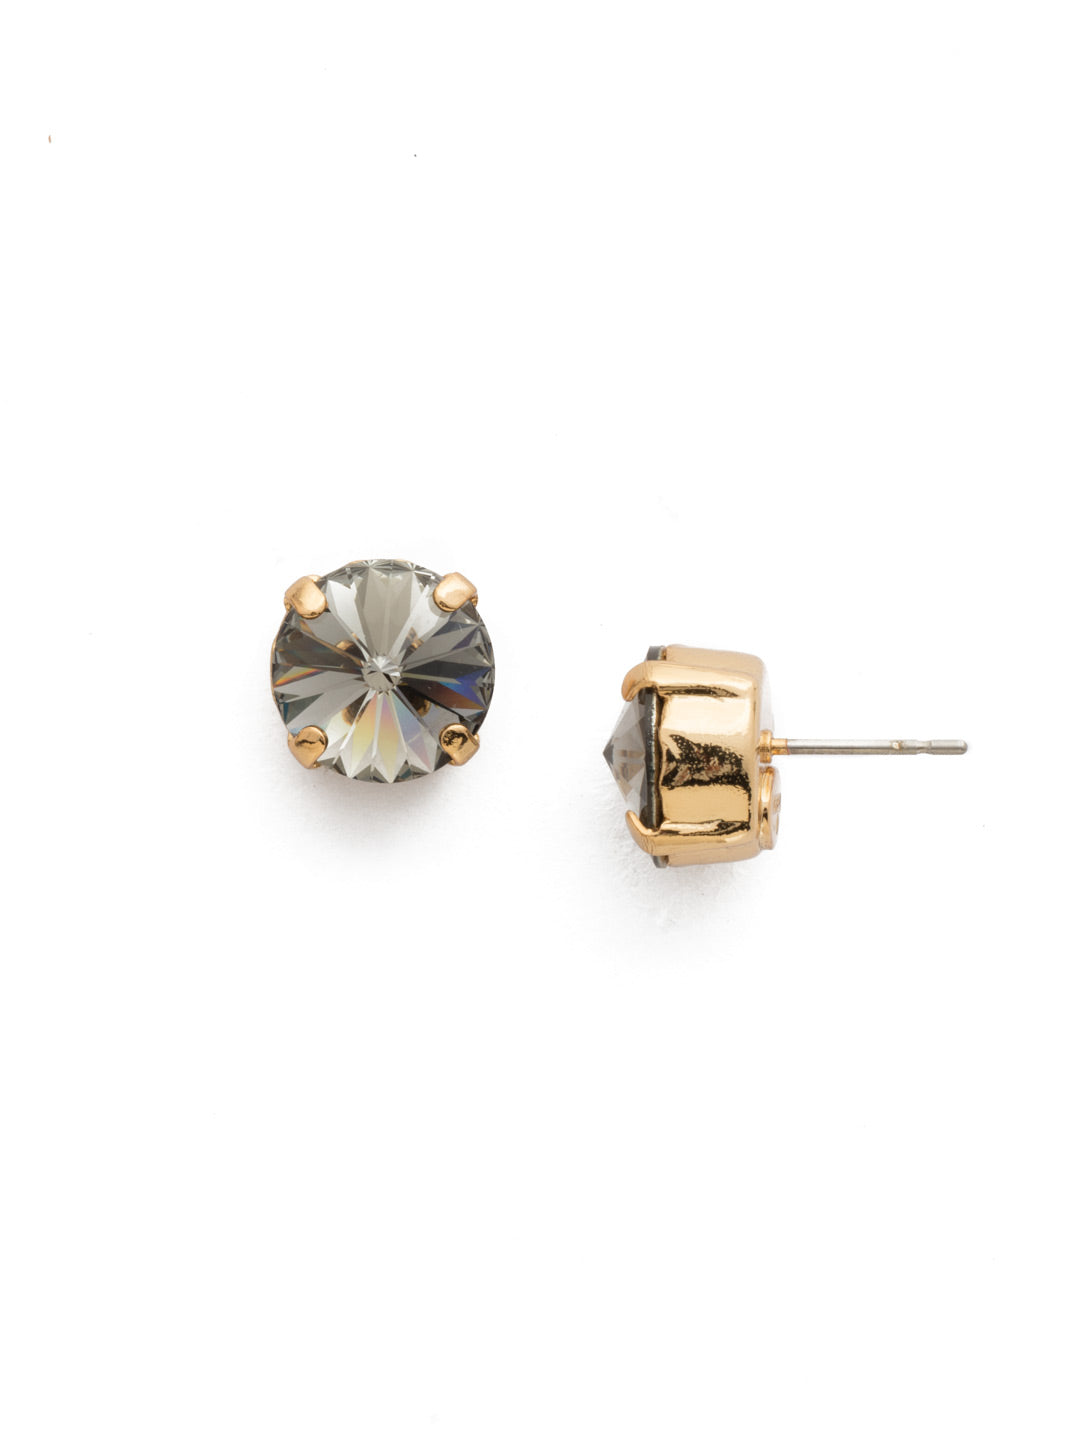 Round Crystal Stud Earrings - ECM14BGBD